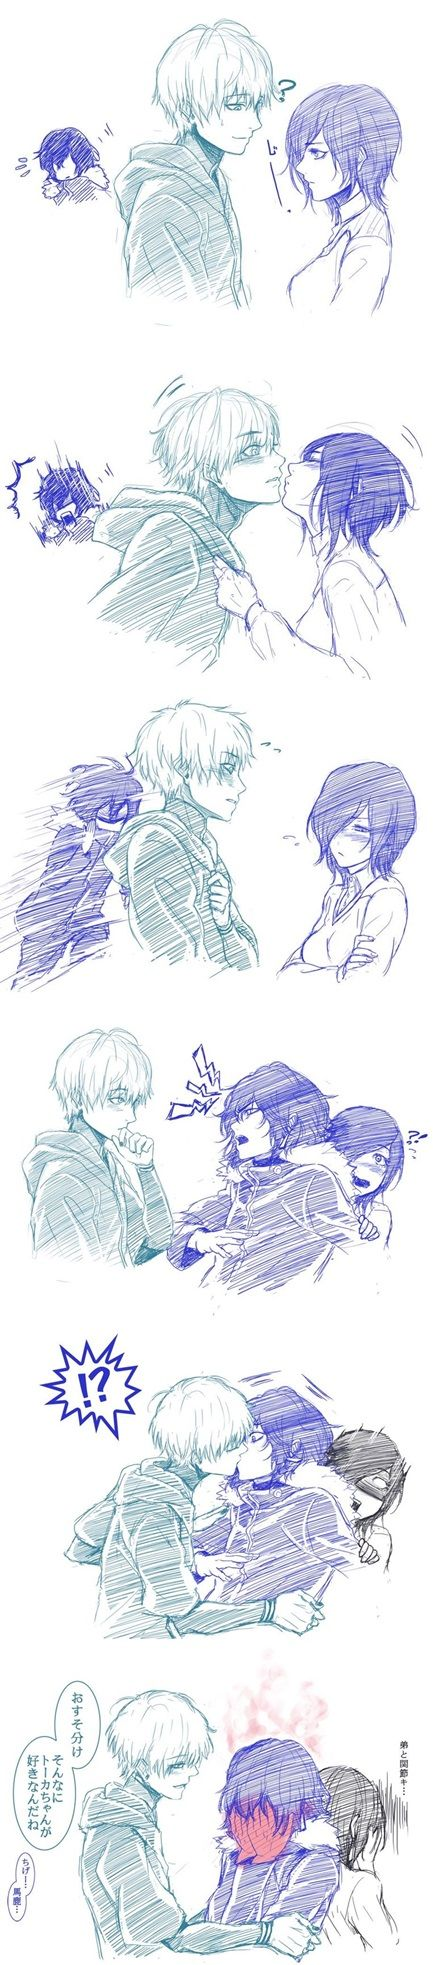 Tokyo Ghoul | Kaneki x Ayato (and Touka) | yaoi | kiss | cute *----* | Should I ship Kaneki with Ayato? xdd :3 AWE!!!// pins for 8 years: